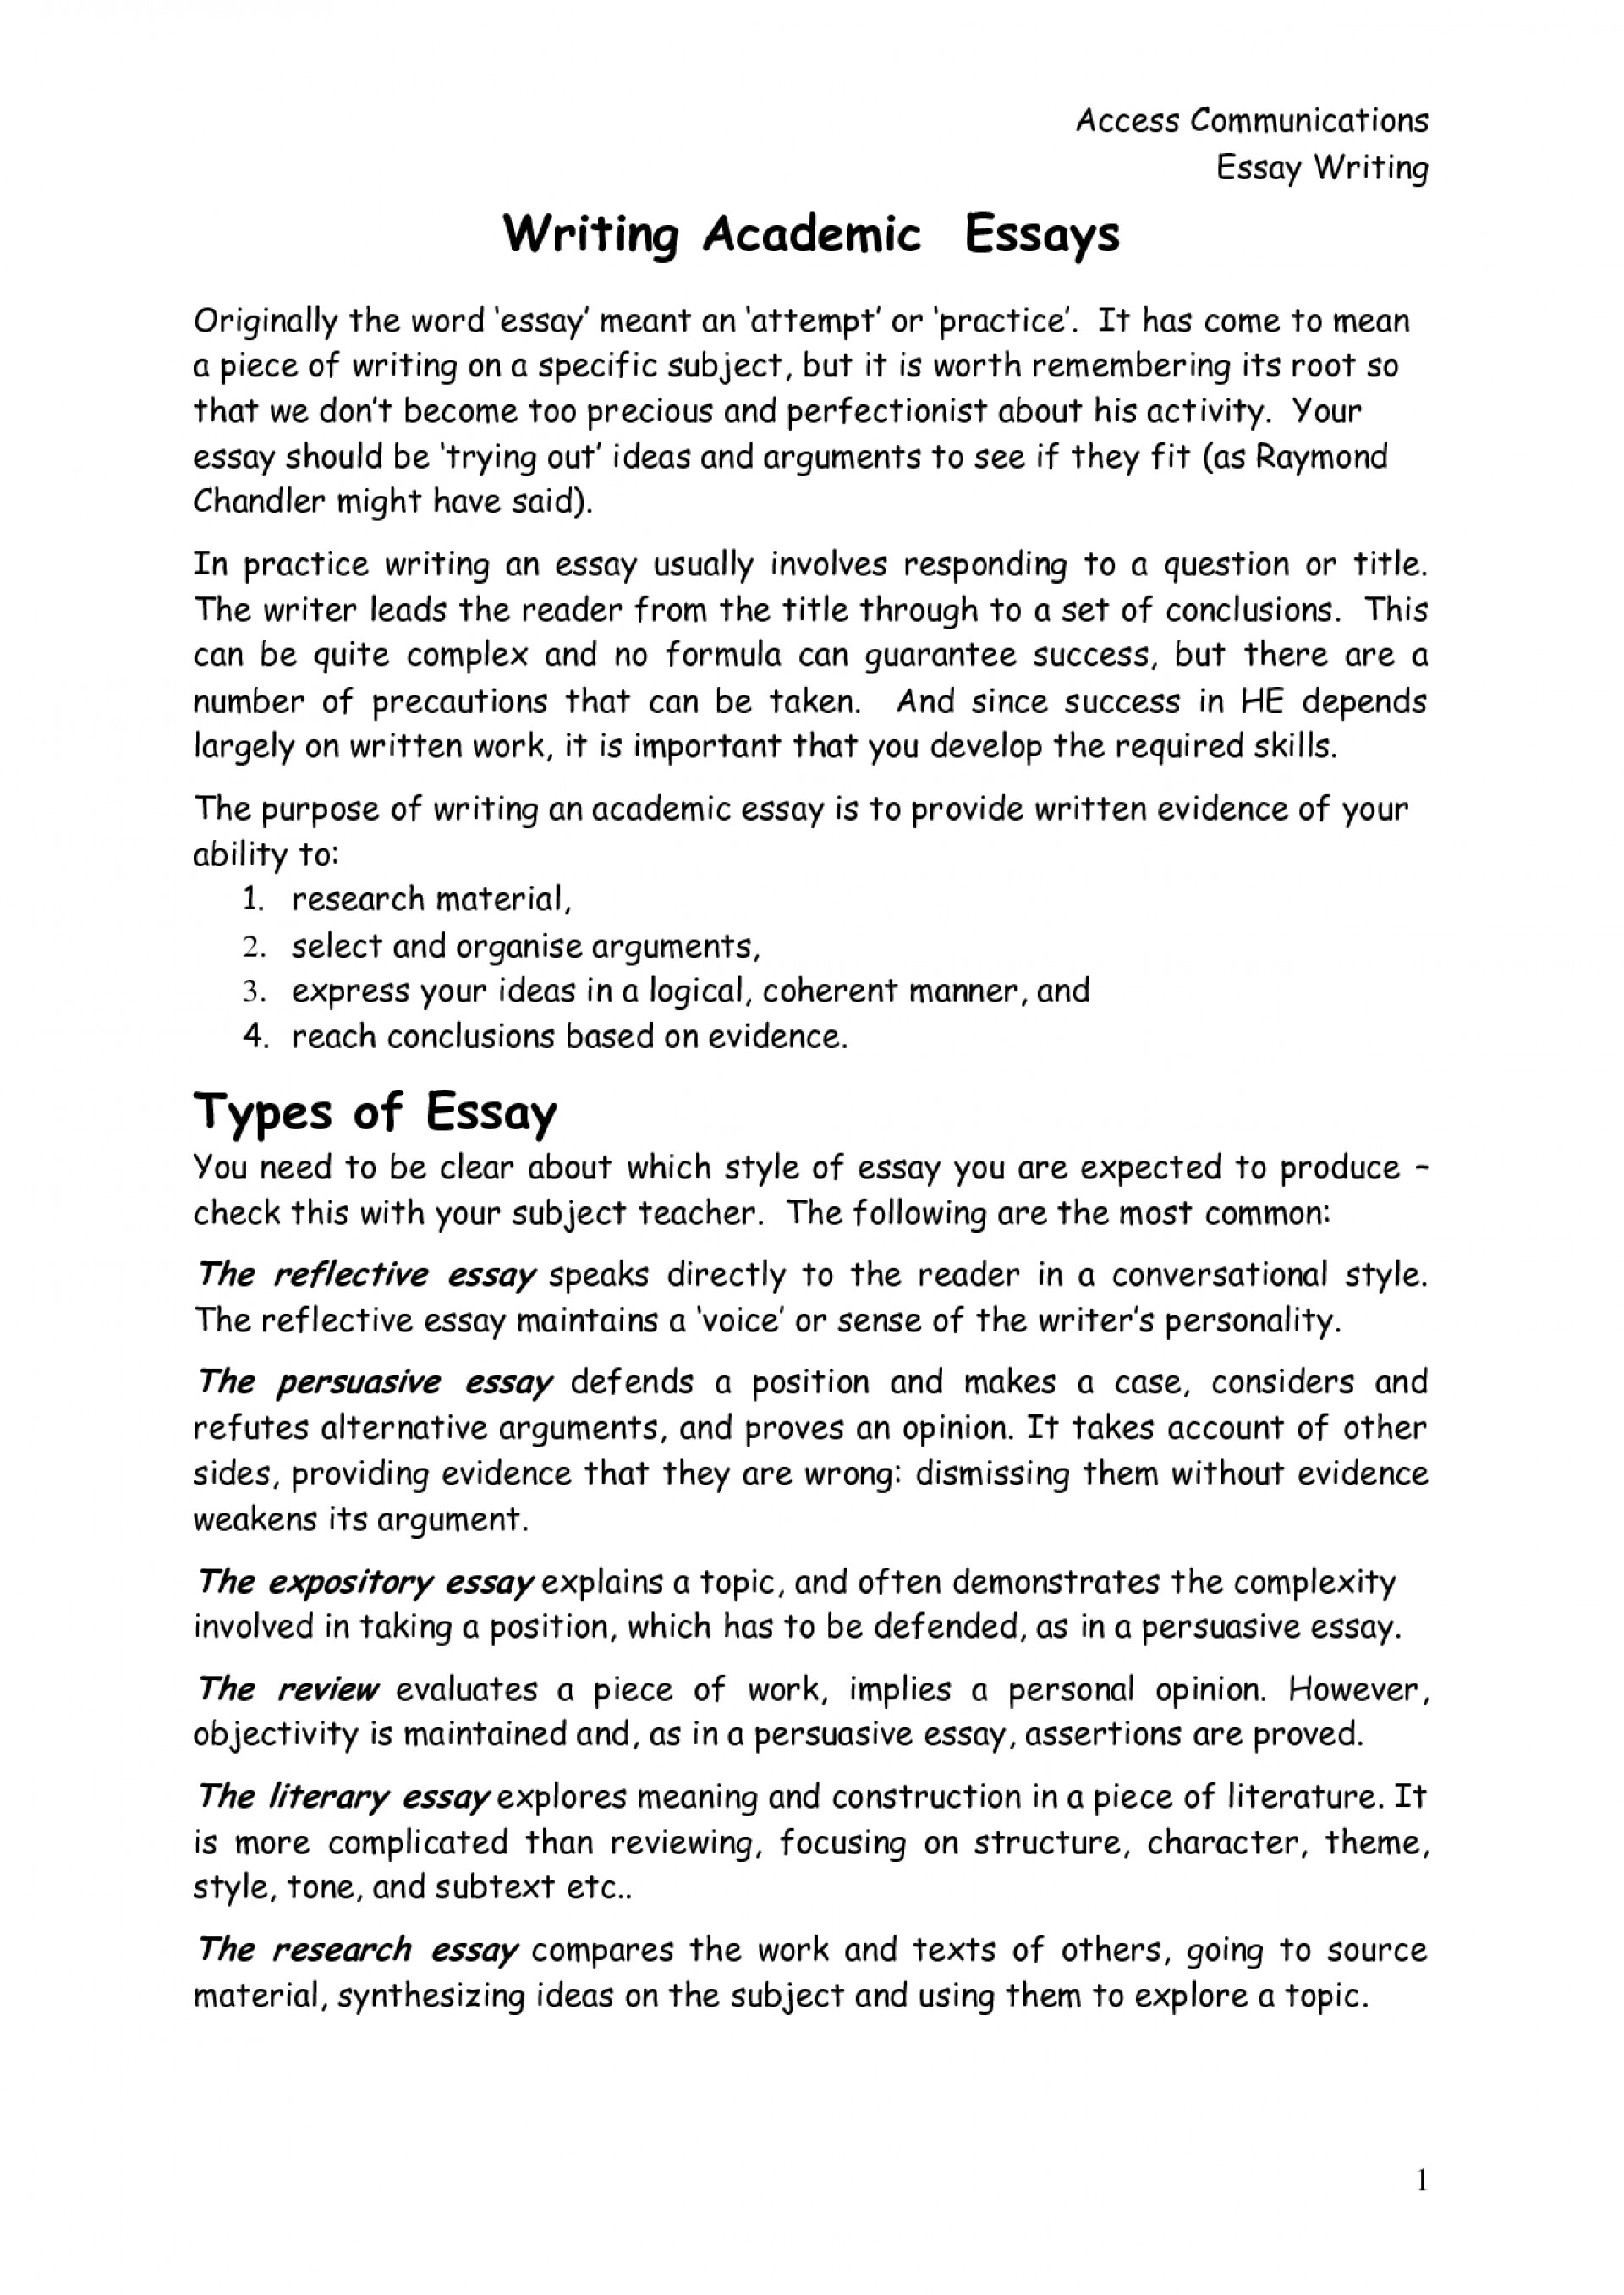 017 Essay Example Write For Me Amazing My Custom Cheap Online Free 1920